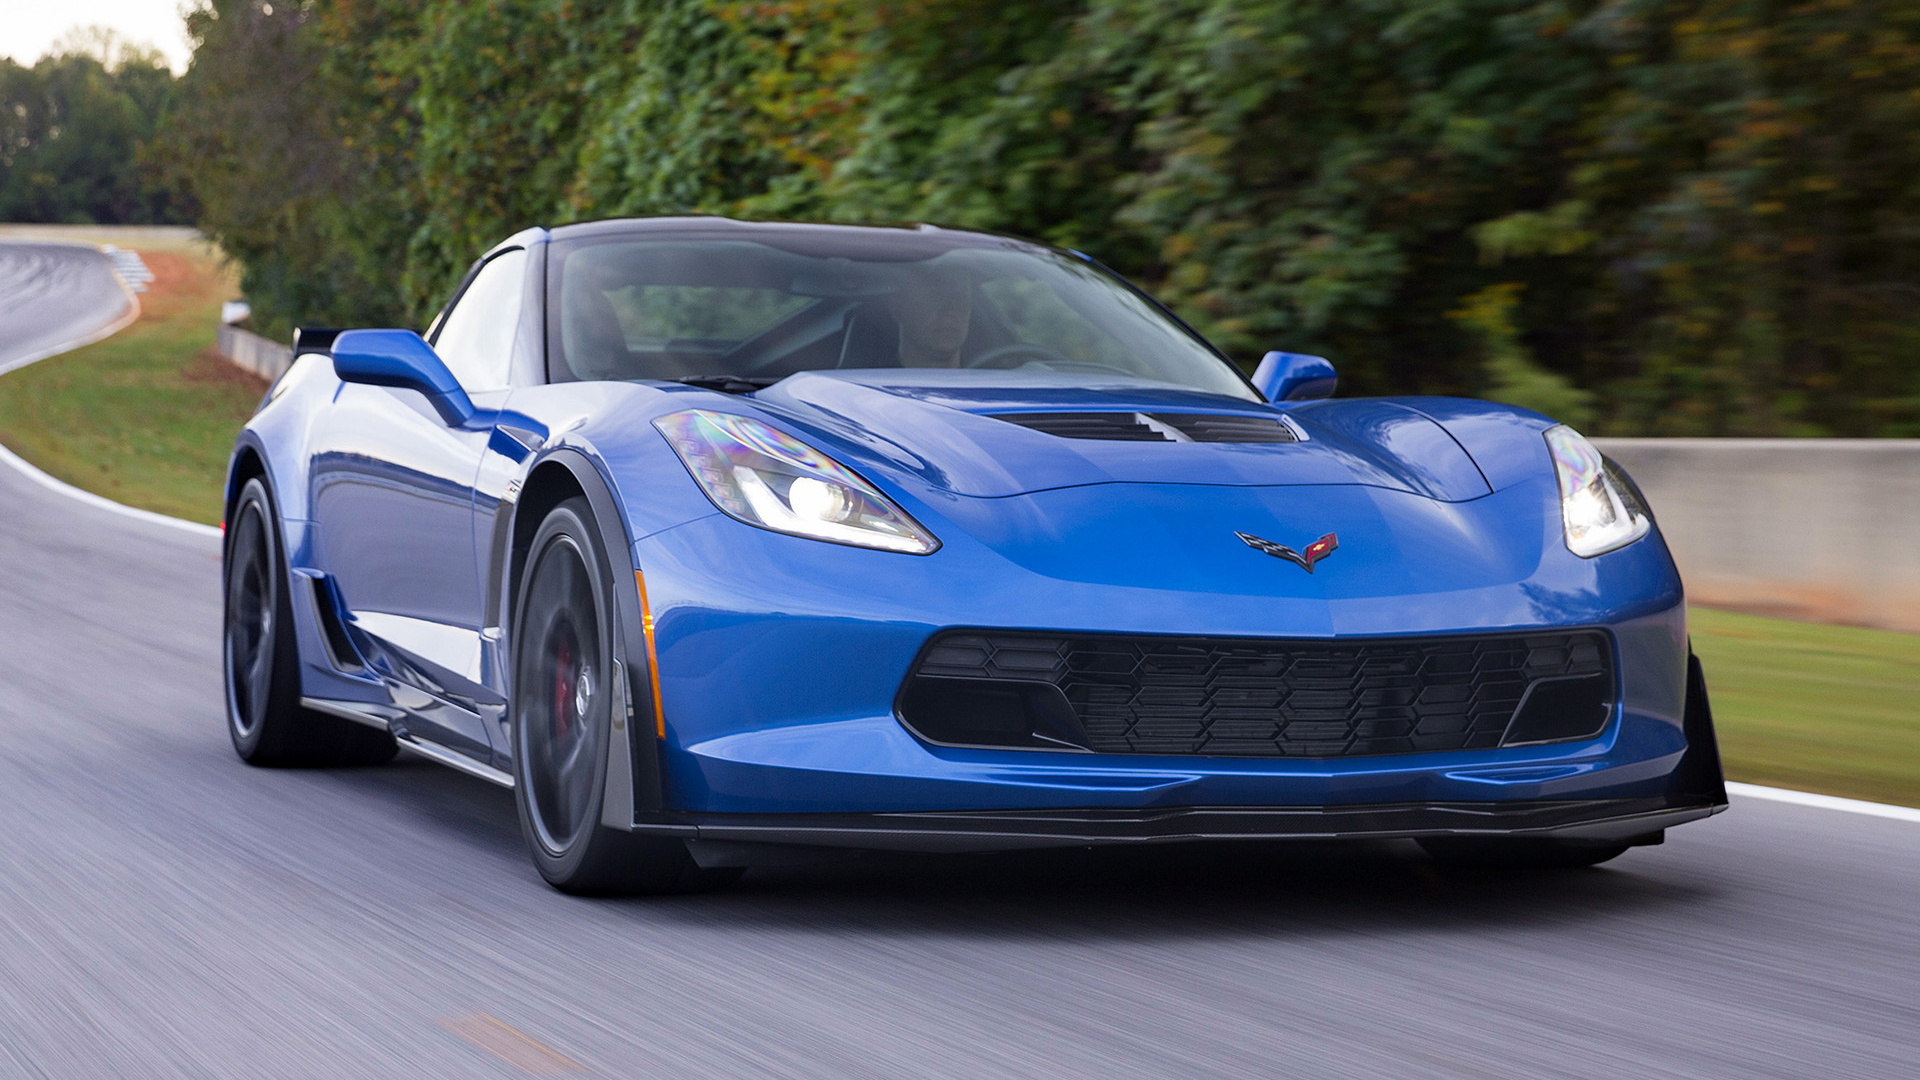 Chevrolet Corvette Stingray >> 2015 Chevrolet Corvette Z06 - Wallpapers and HD Images | Car Pixel